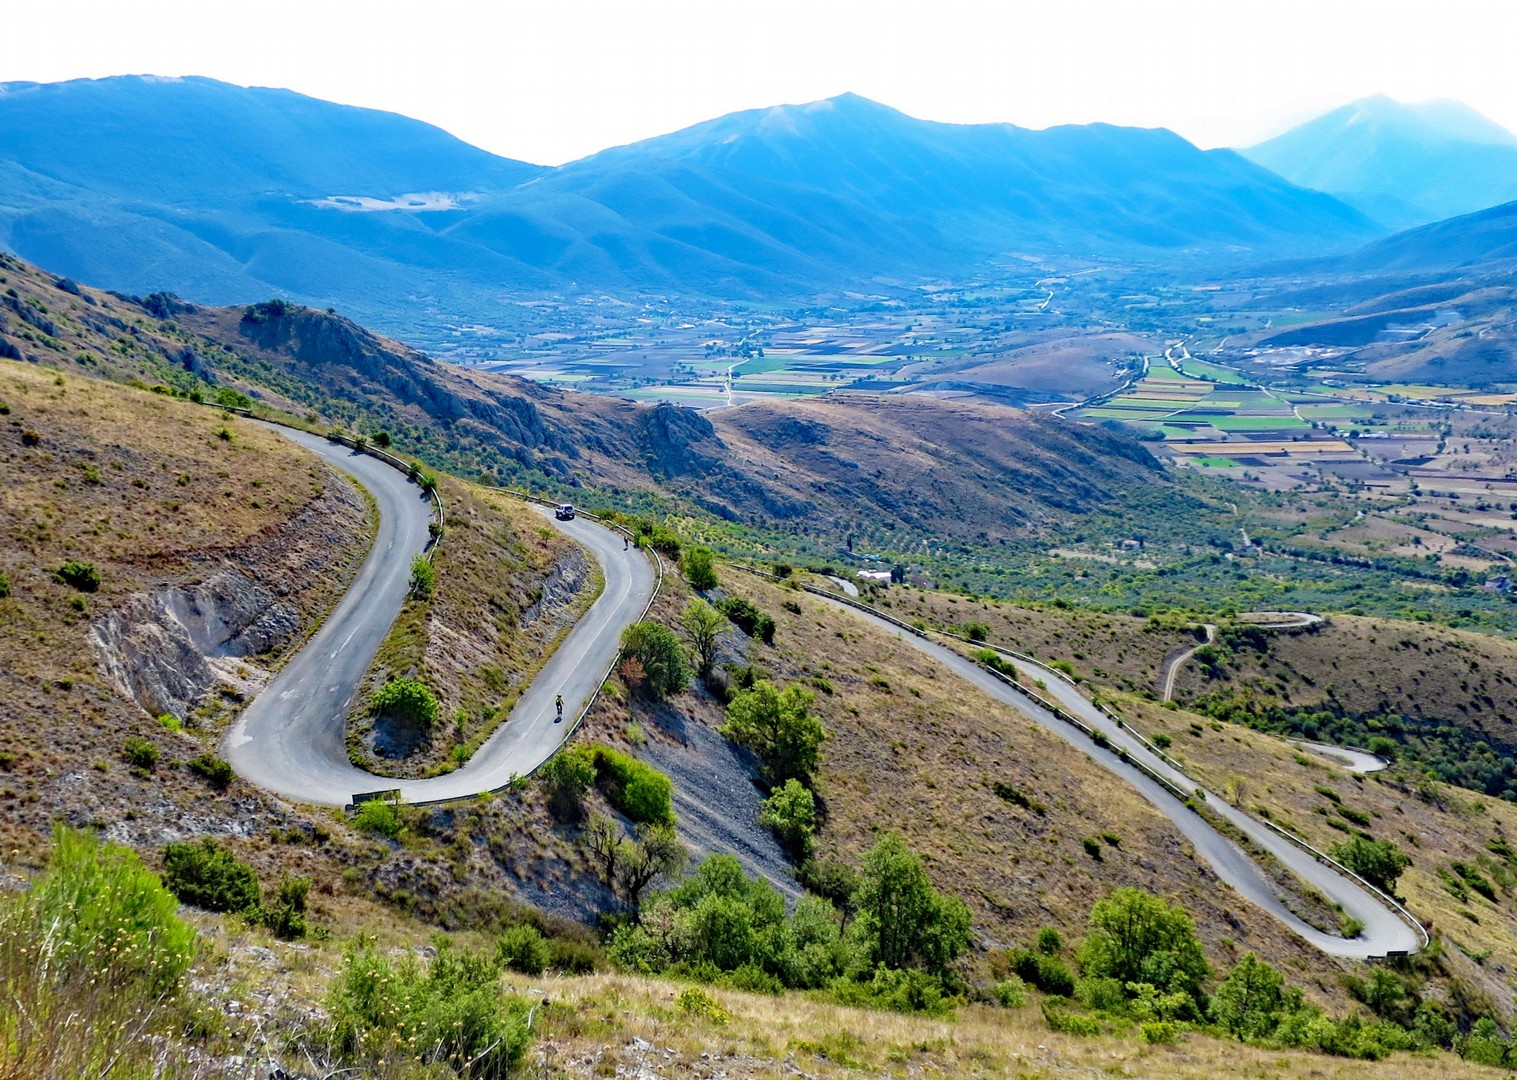 guided-road-cycling-adventure-south-to-north-italy.jpg - Italy - Grand Traverse - South to North (22 days) - Guided Road Cycling Holiday - Road Cycling